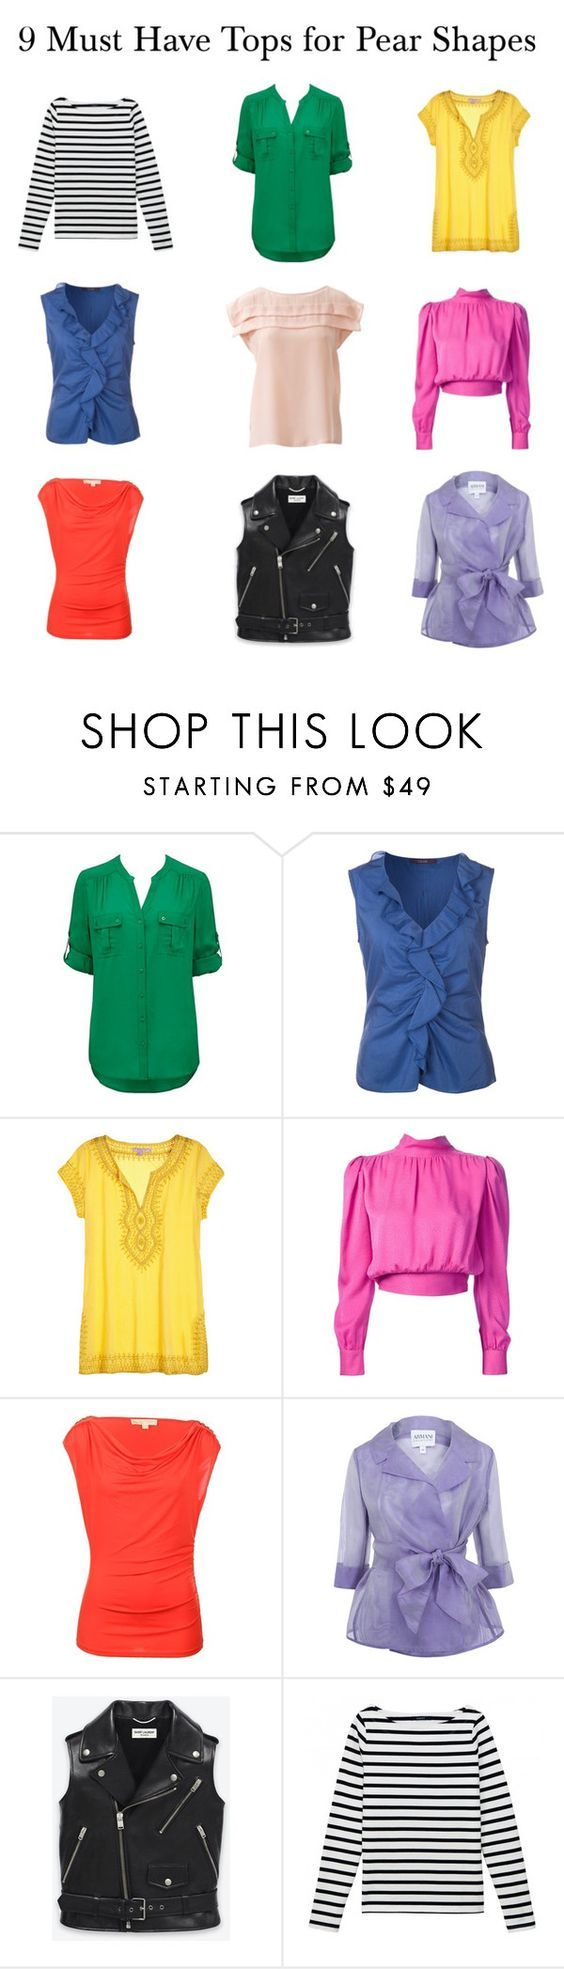 """""""Tops For Pear Shapes"""" by elsasima ❤ liked on Polyvore featuring Forever New, Laurèl, Calypso St. Barth, Yves Saint Laurent, MICHAEL Michael Kors, Armani Collezioni, women's clothing, women's fashion, women and female"""